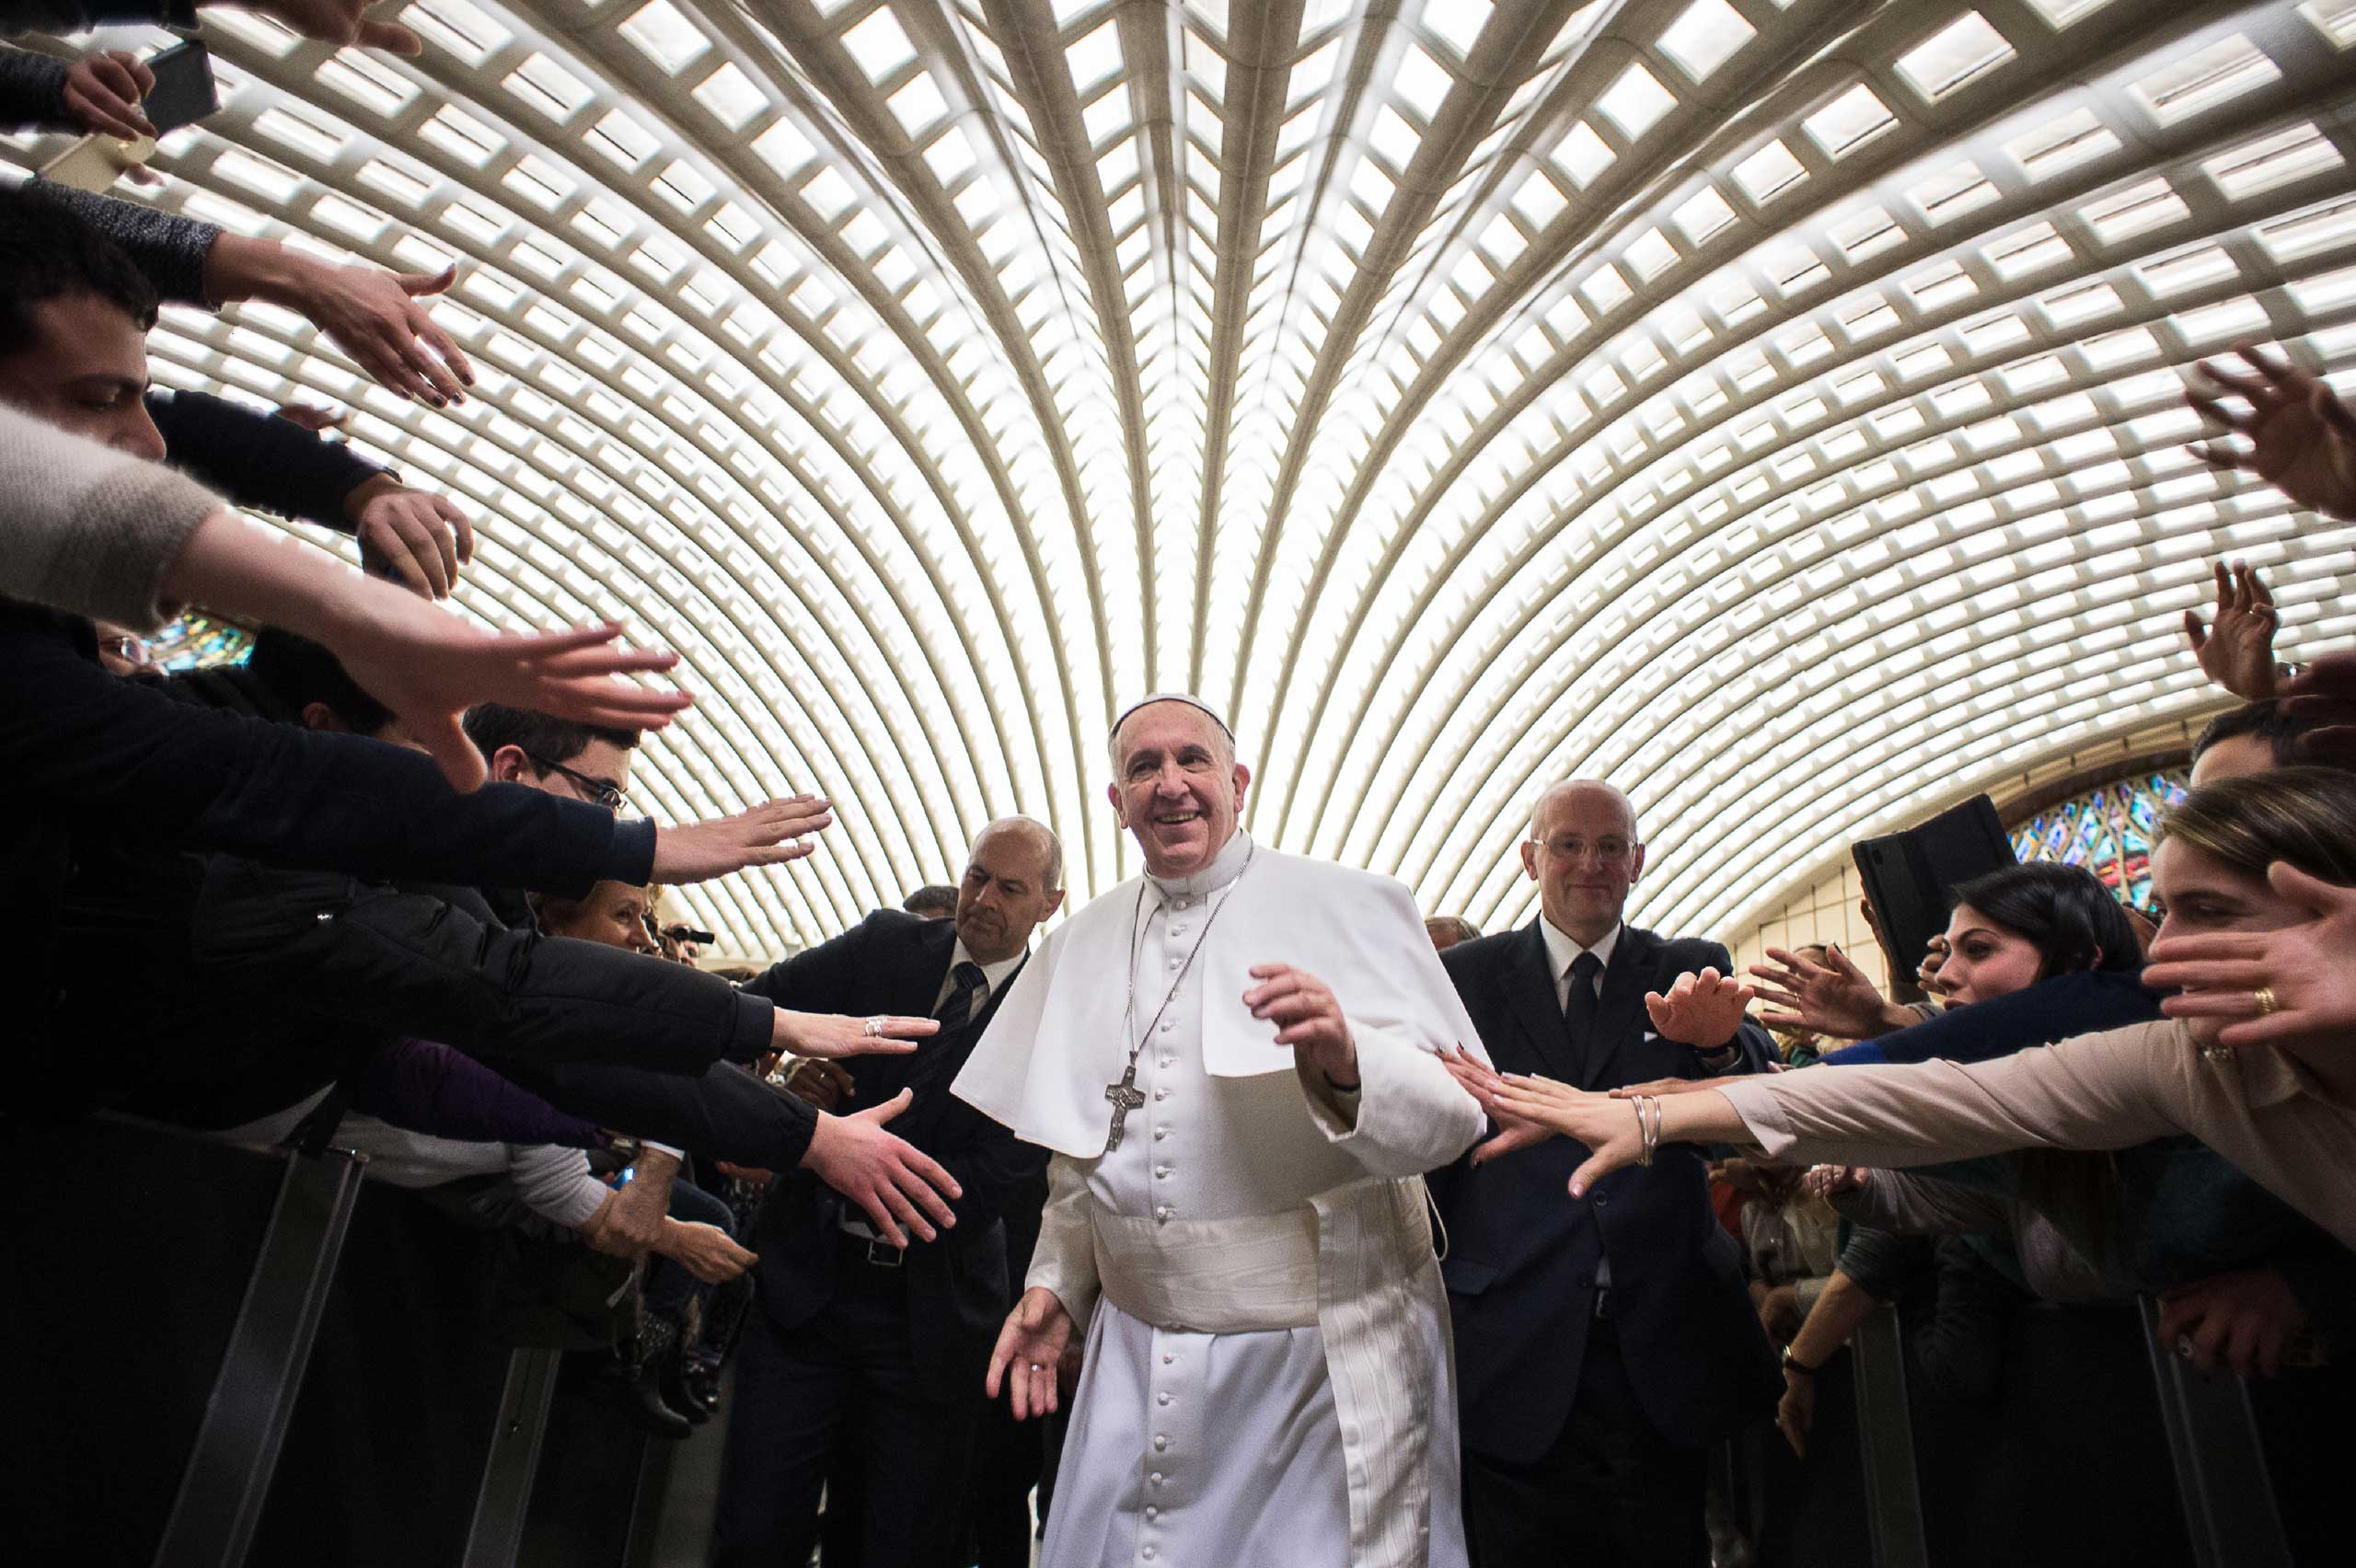 Pope Francis arrives for a special audience with members of the dioceses of Cassano allo Ionio, from southern Italy, at the Vatican. Feb. 21, 2015.